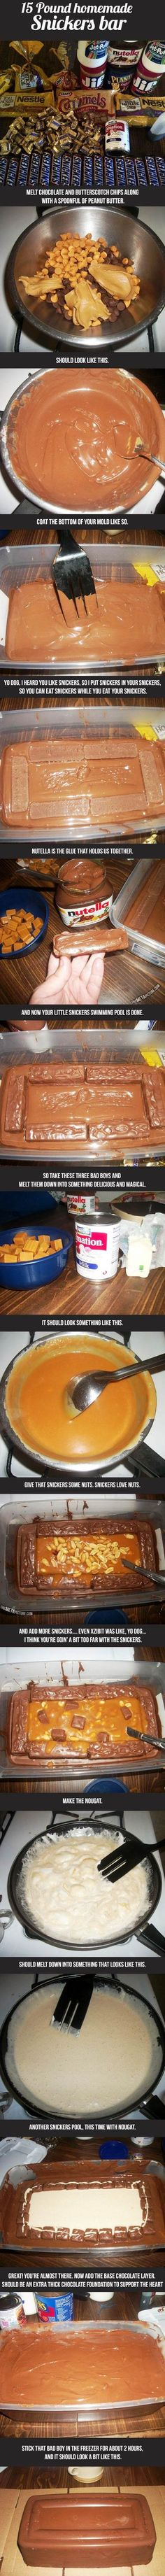 How To Make A 15 Pound Snickers Bar